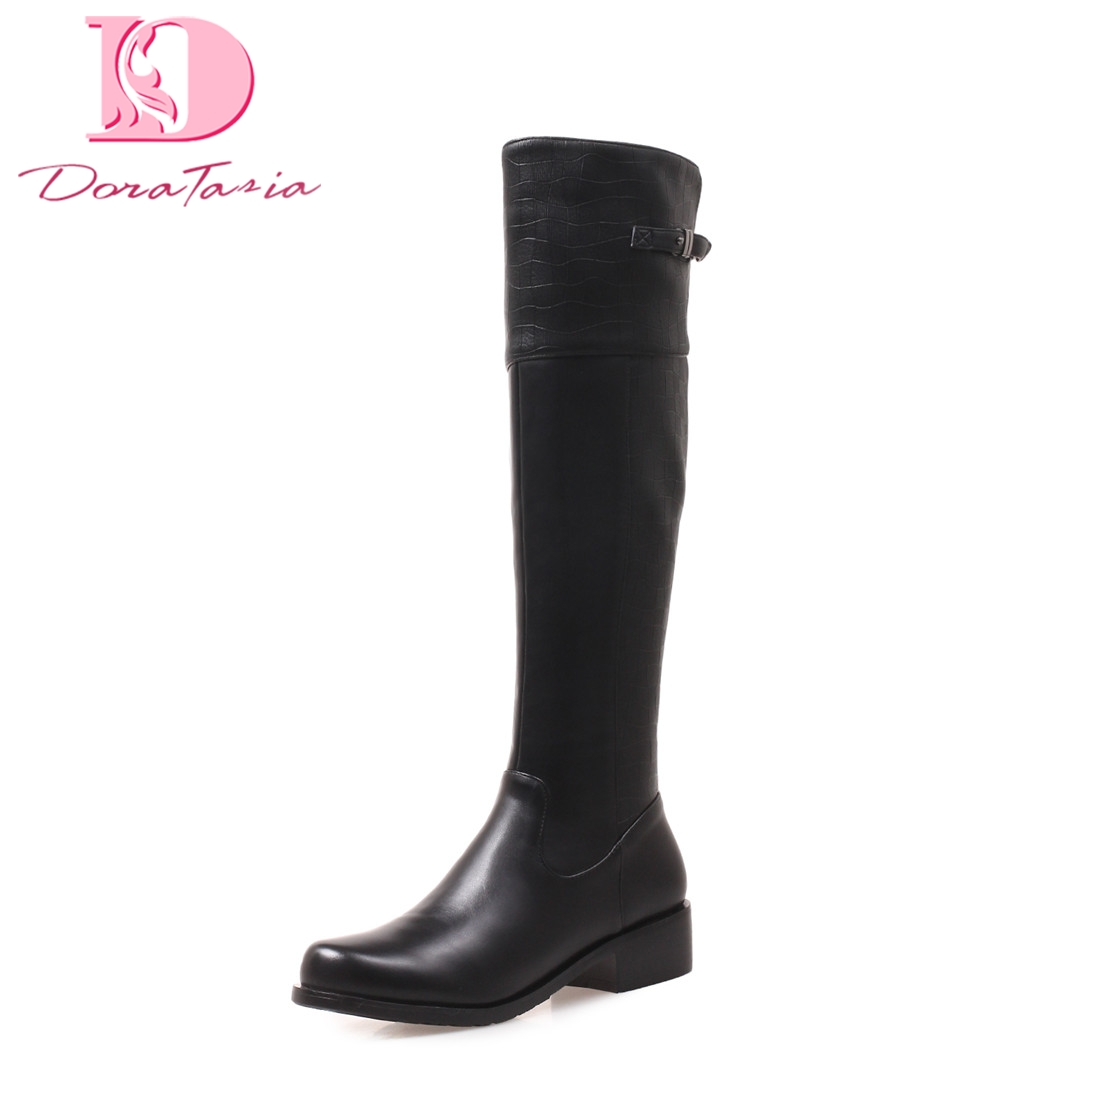 Doratasia new plus size 34-41 Square Heels Buckle Strap womens Shoes Woman Knee High Boots Autumn Boots WomanDoratasia new plus size 34-41 Square Heels Buckle Strap womens Shoes Woman Knee High Boots Autumn Boots Woman